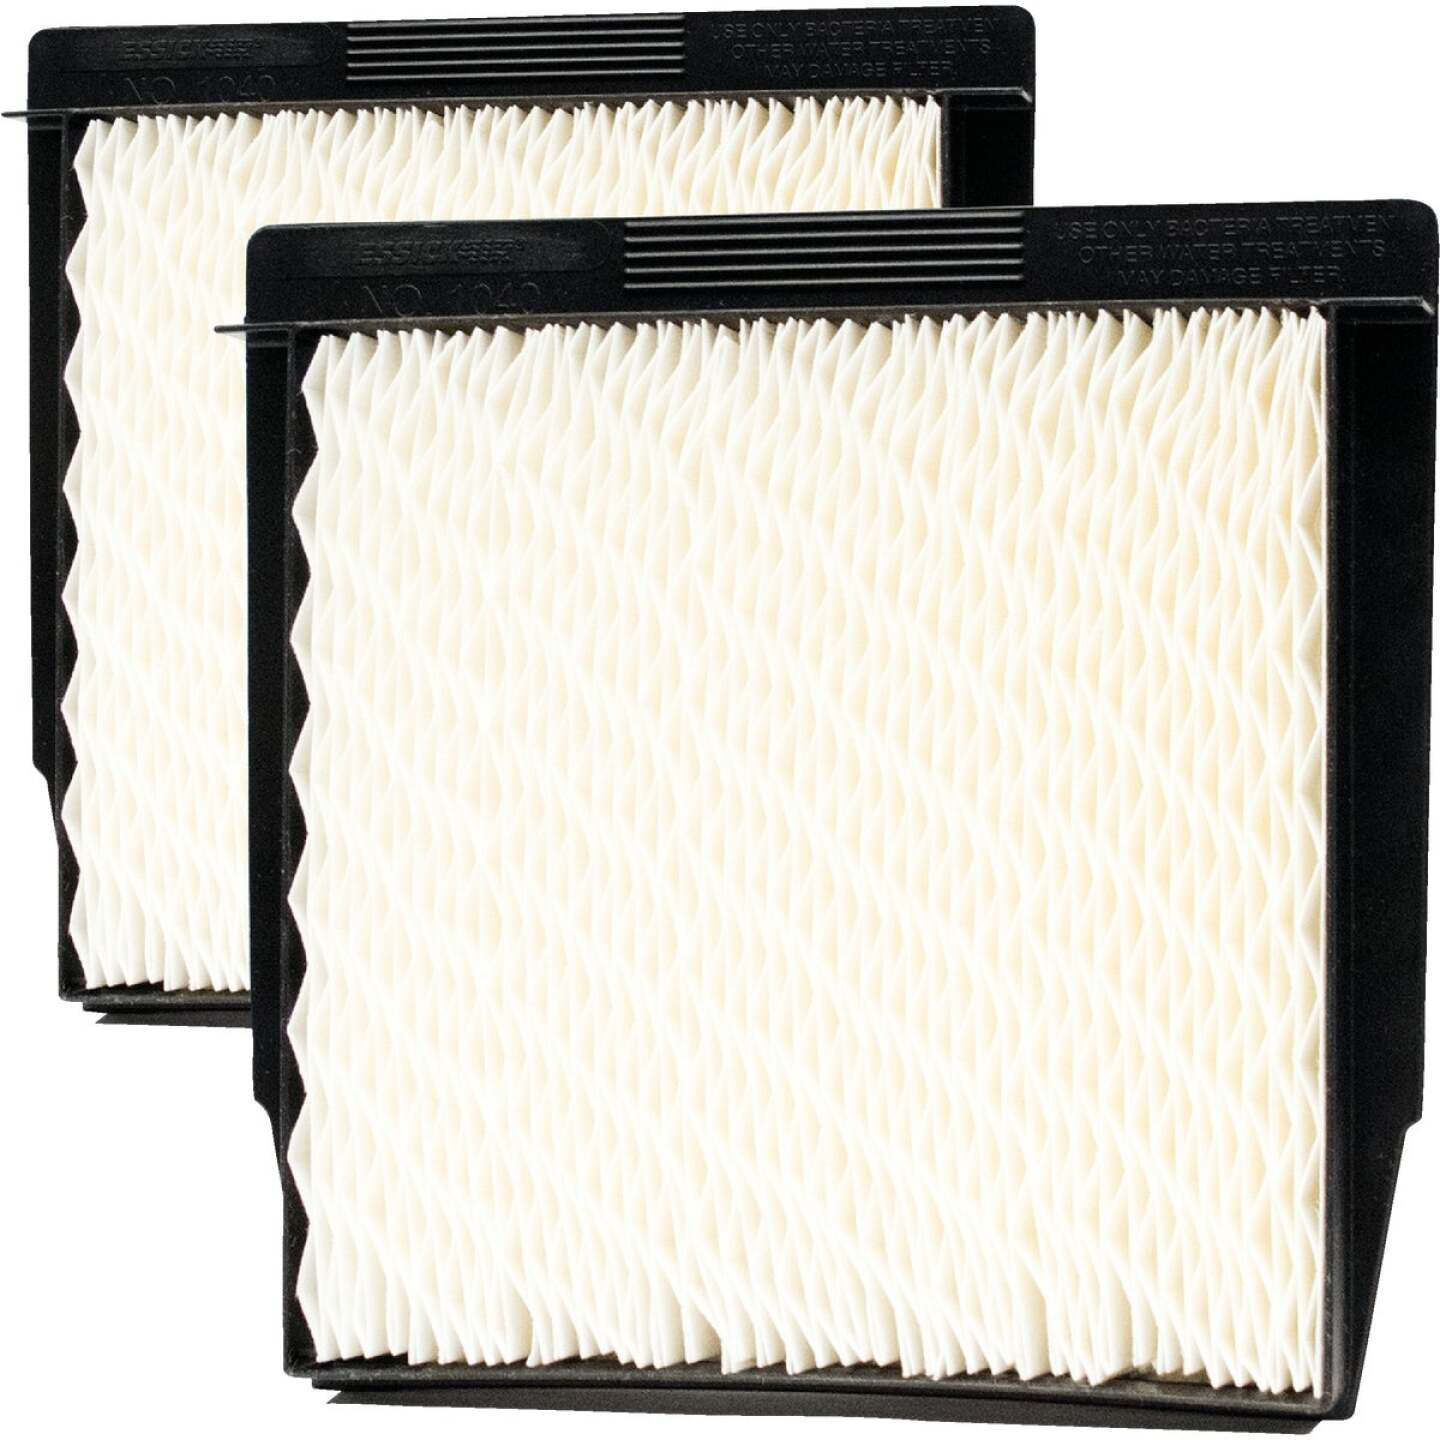 Essick Air 1040 Super Wick Humidifier Wick Filter (2-Pack) Image 1